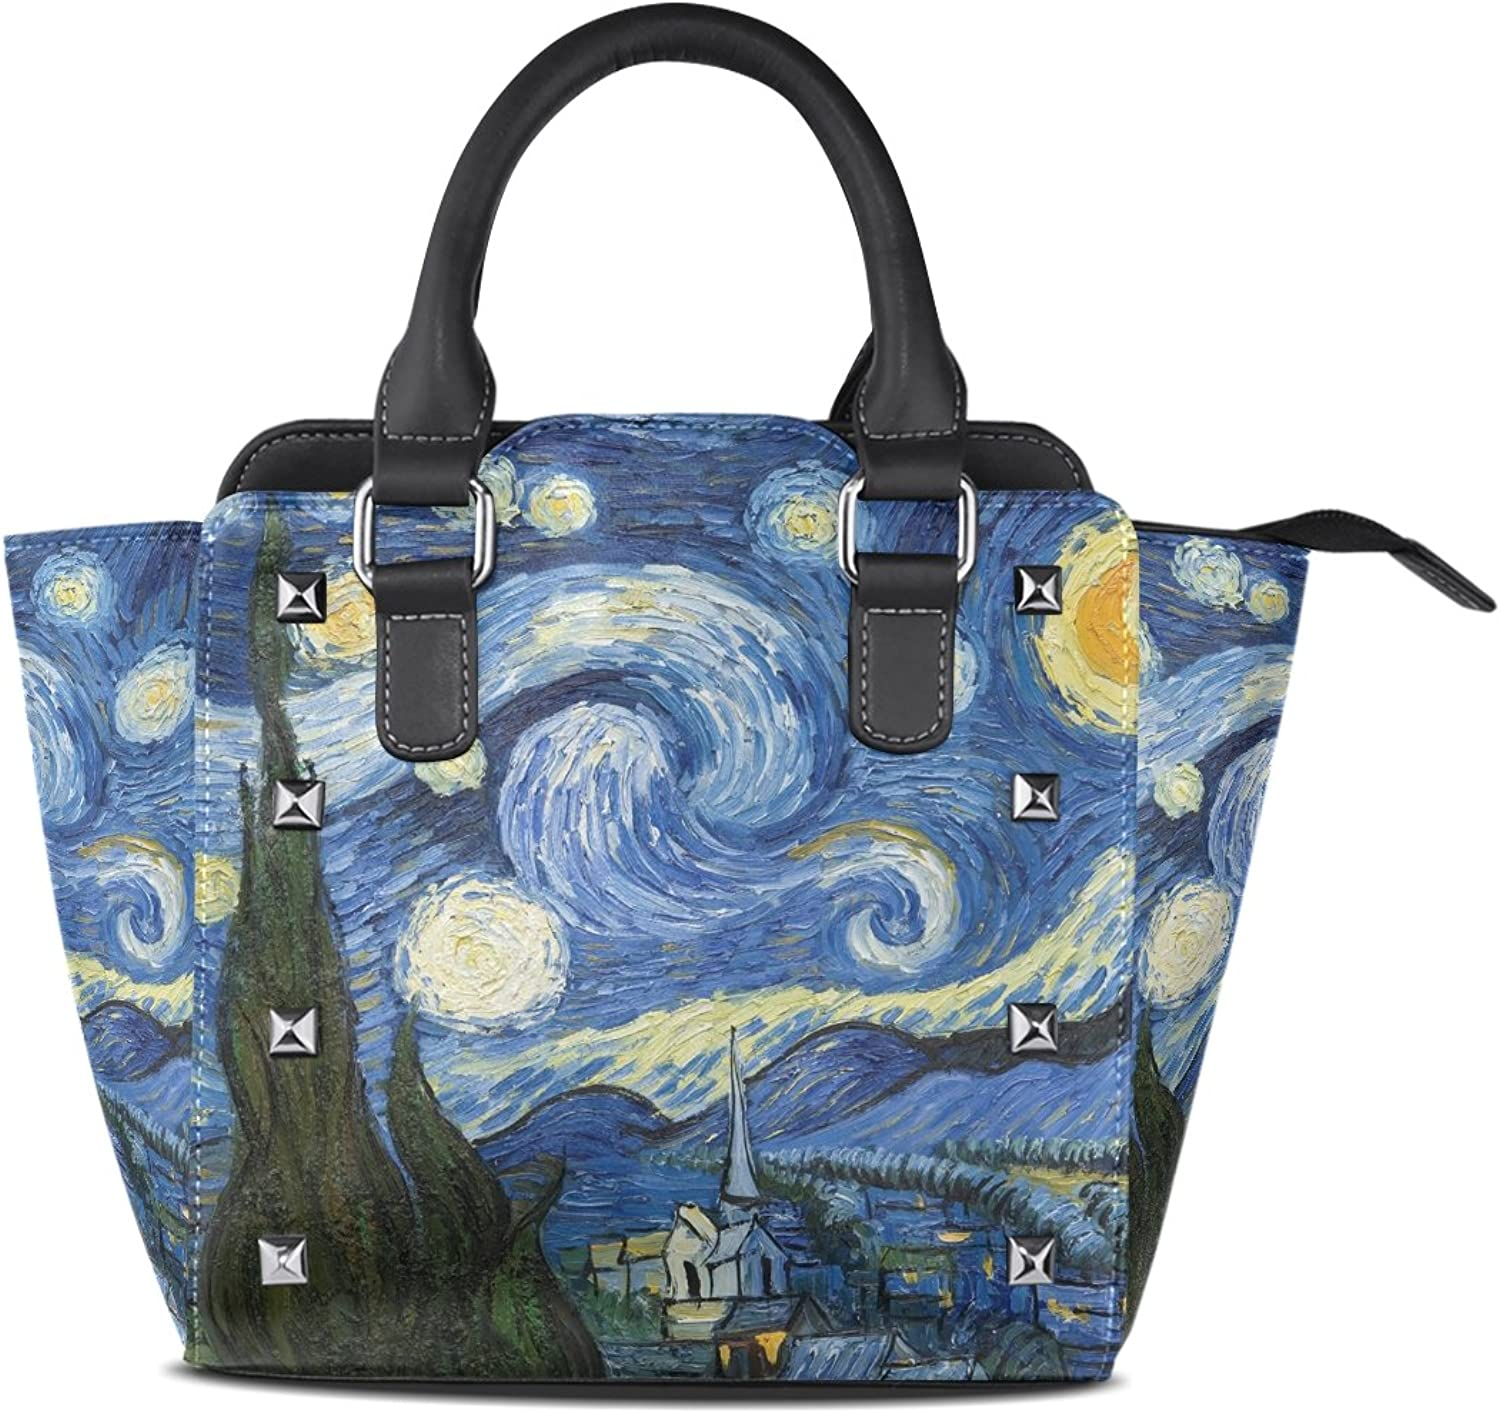 My Little Nest Women's Top Handle Satchel Handbag Starry Night Van Gogh Oil Painting Ladies PU Leather Shoulder Bag Crossbody Bag